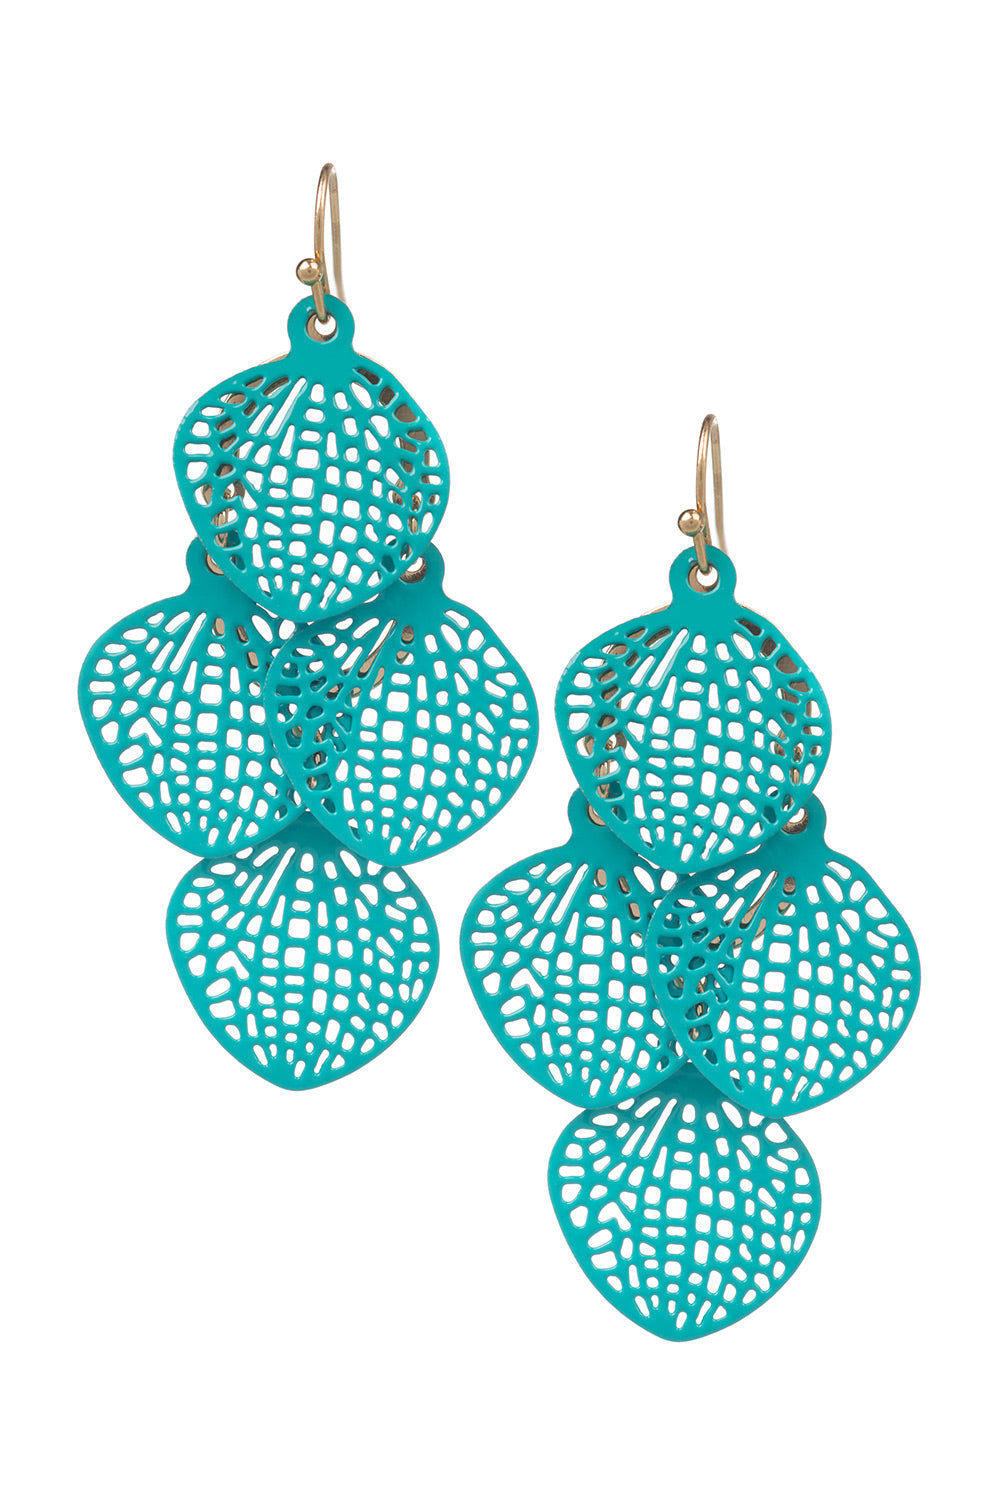 Type 3 Turquoise Touch Earrings